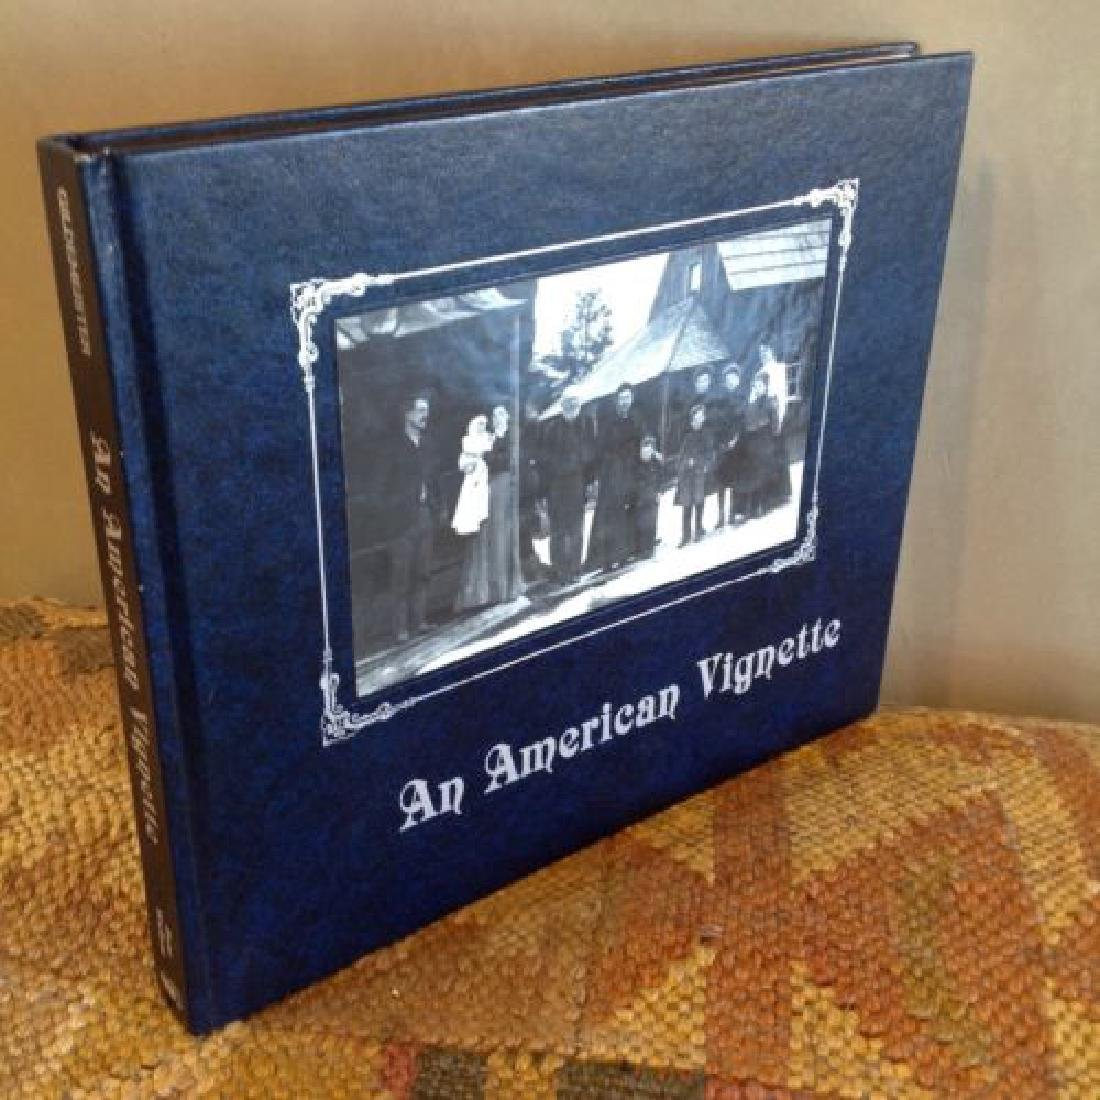 An American Vignette by Jerry Gildemeister Autographed